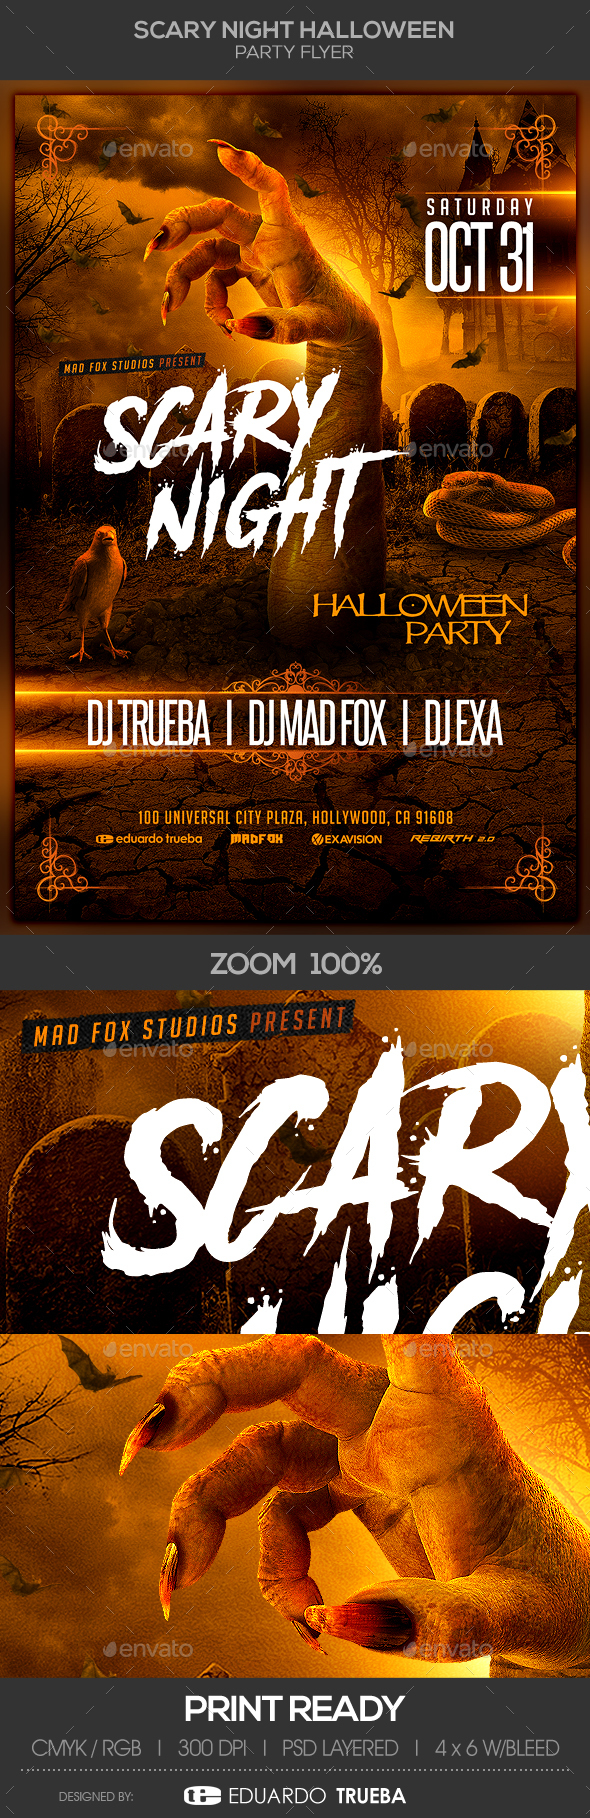 Scary Night Halloween Party Flyer - Clubs & Parties Events